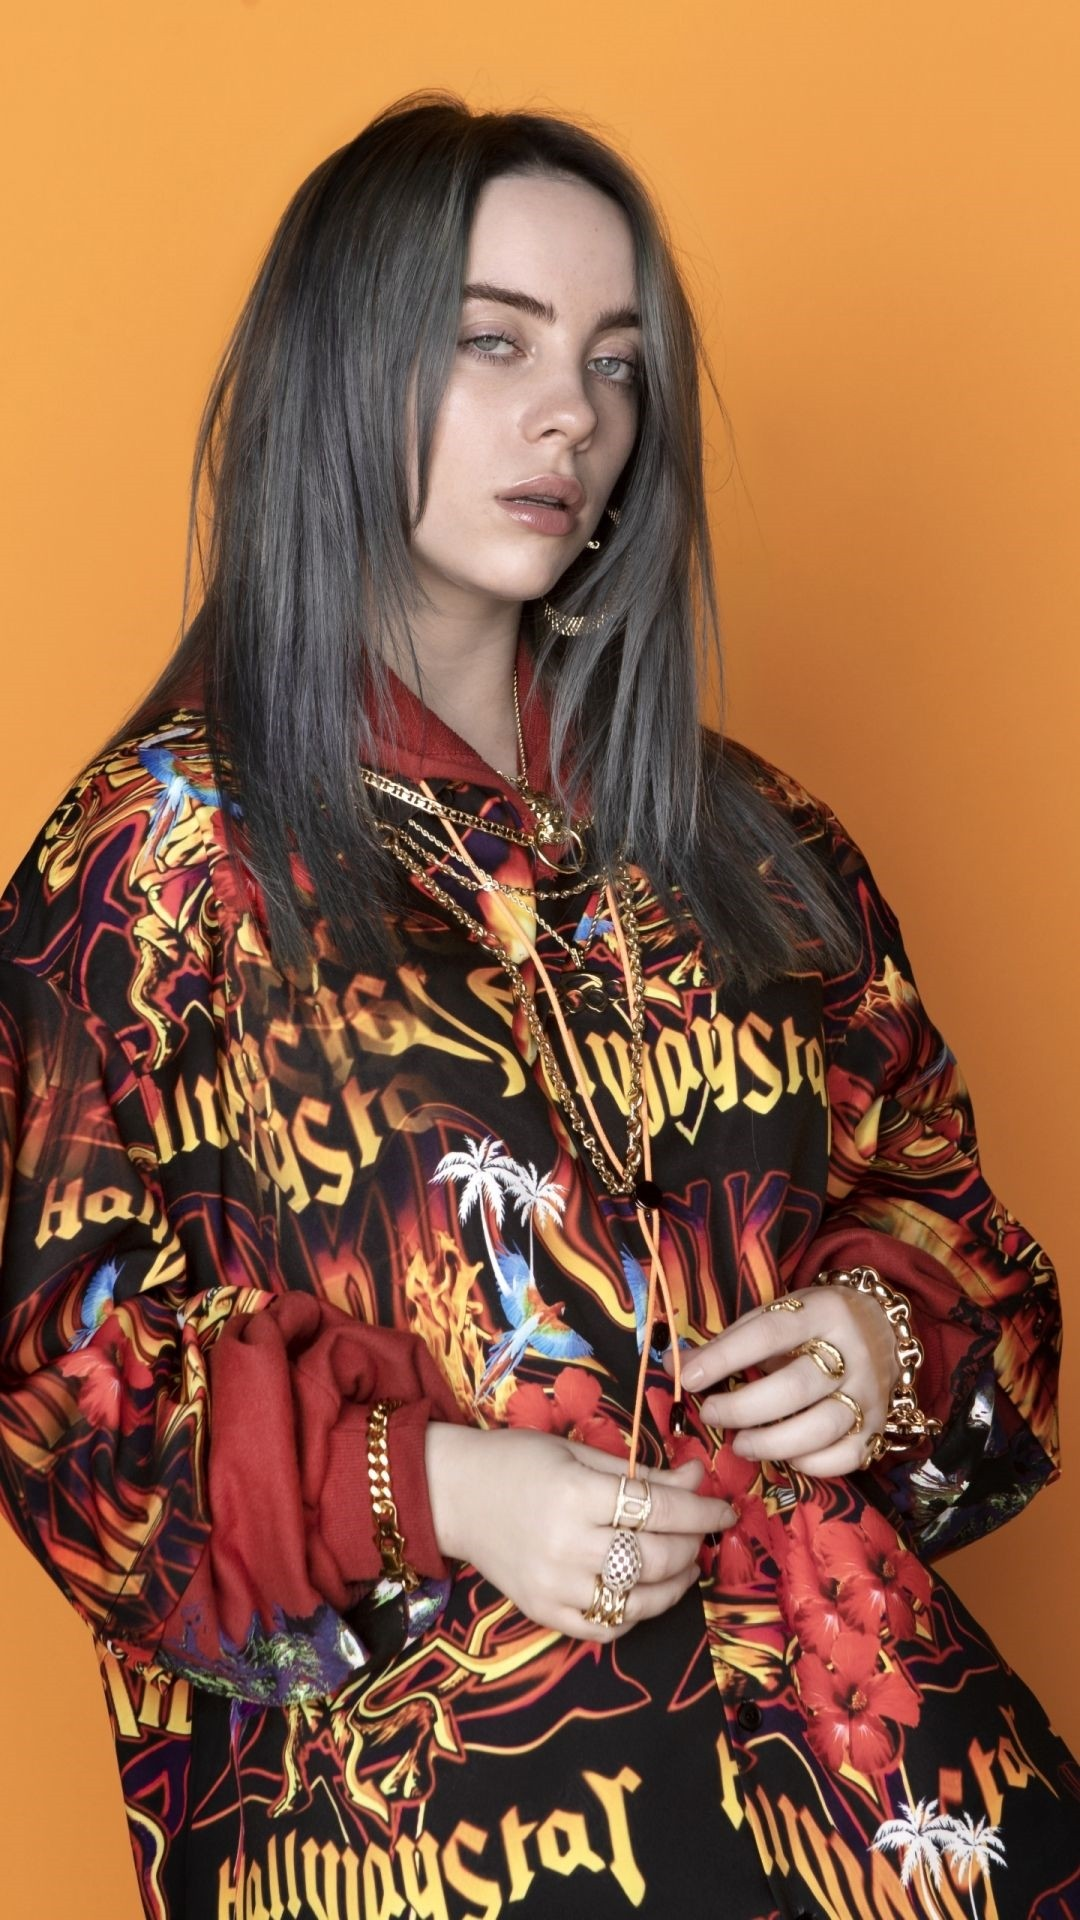 Billie Eilish free wallpaper for android